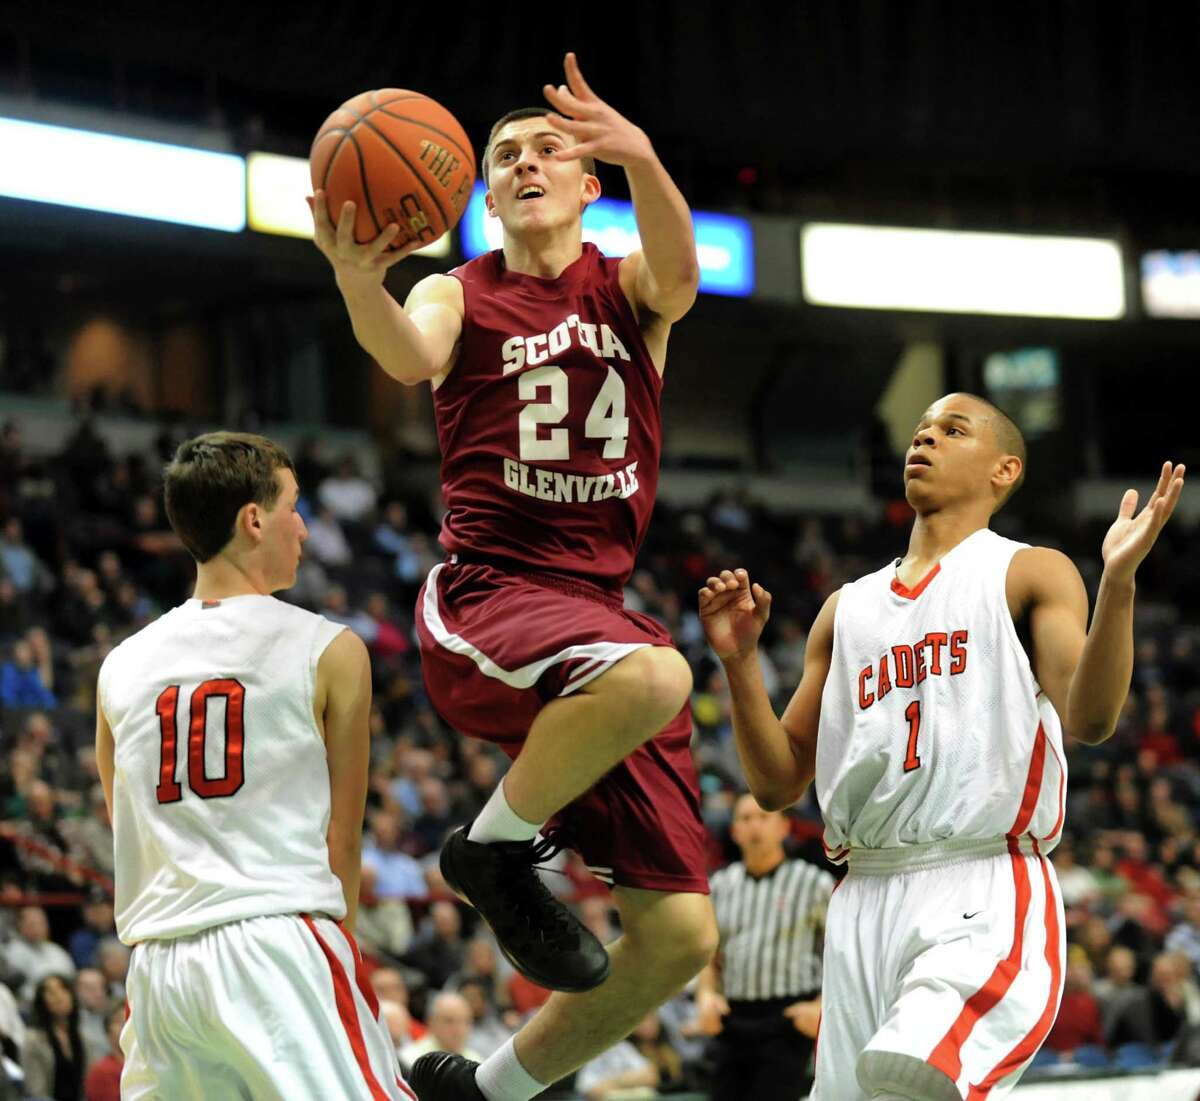 Scotia's Joe Cremo, center, goes to the hoop as Albany Academy's John Moutopoulos, left, and Ray Jerome defend during their Federation Class A basketball semifinal on Friday, March 21, 2014, at Times Union Center in Albany, N.Y. (Cindy Schultz / Times Union)